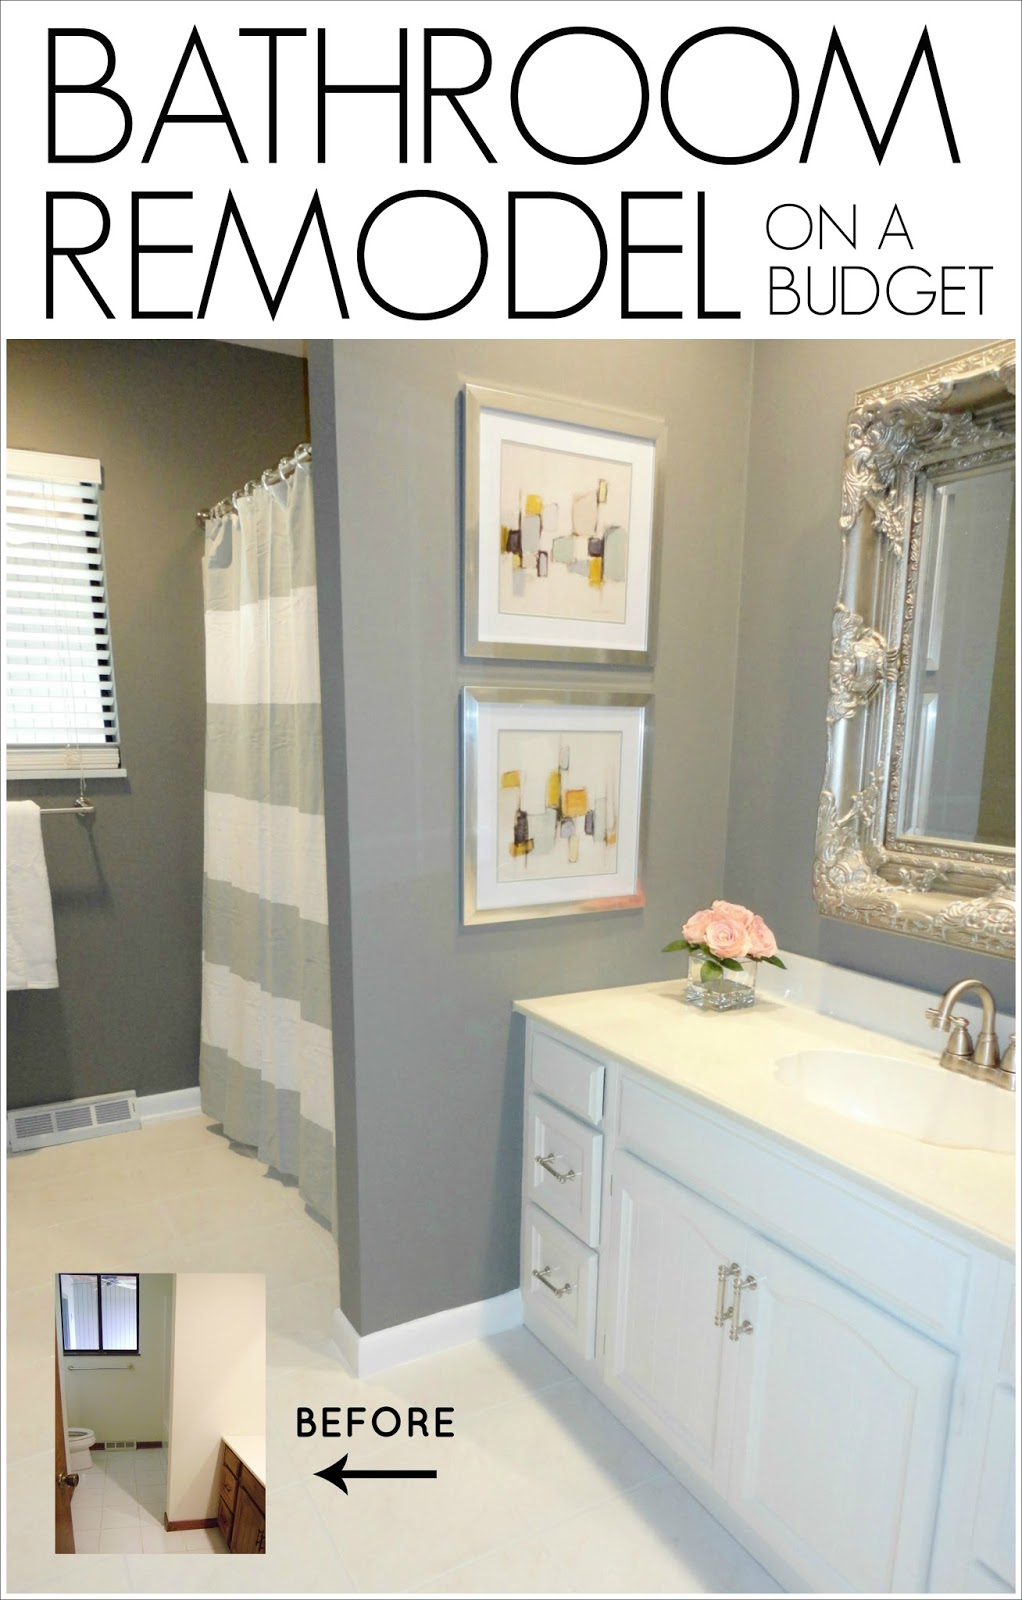 Awesome DIY Bathroom Remodel on a Budget